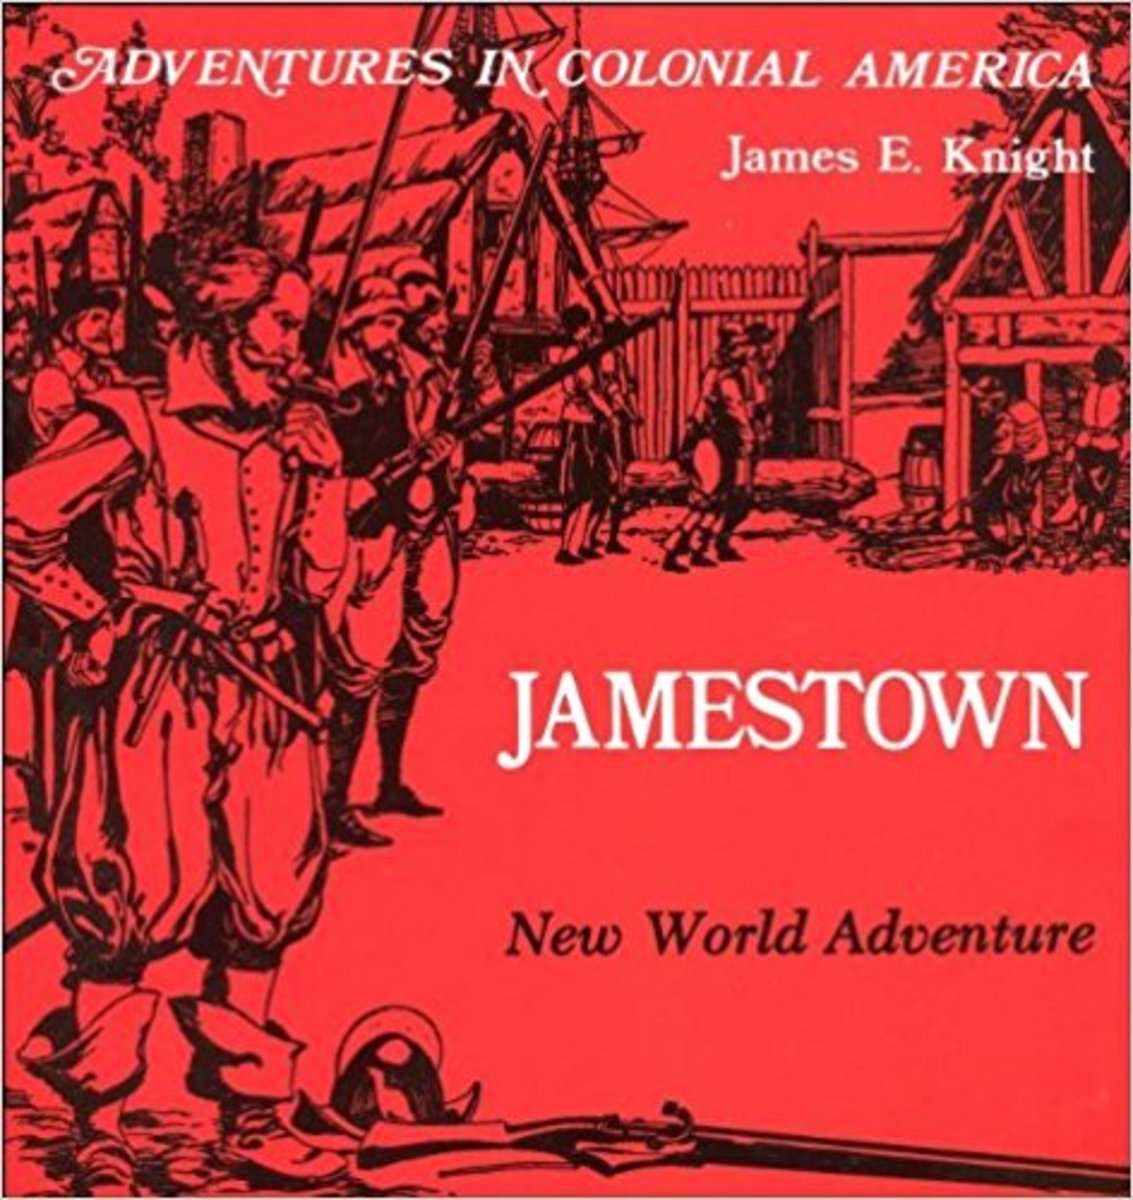 Jamestown, New World Adventure (Adventures in Colonial America) by James E. Knight